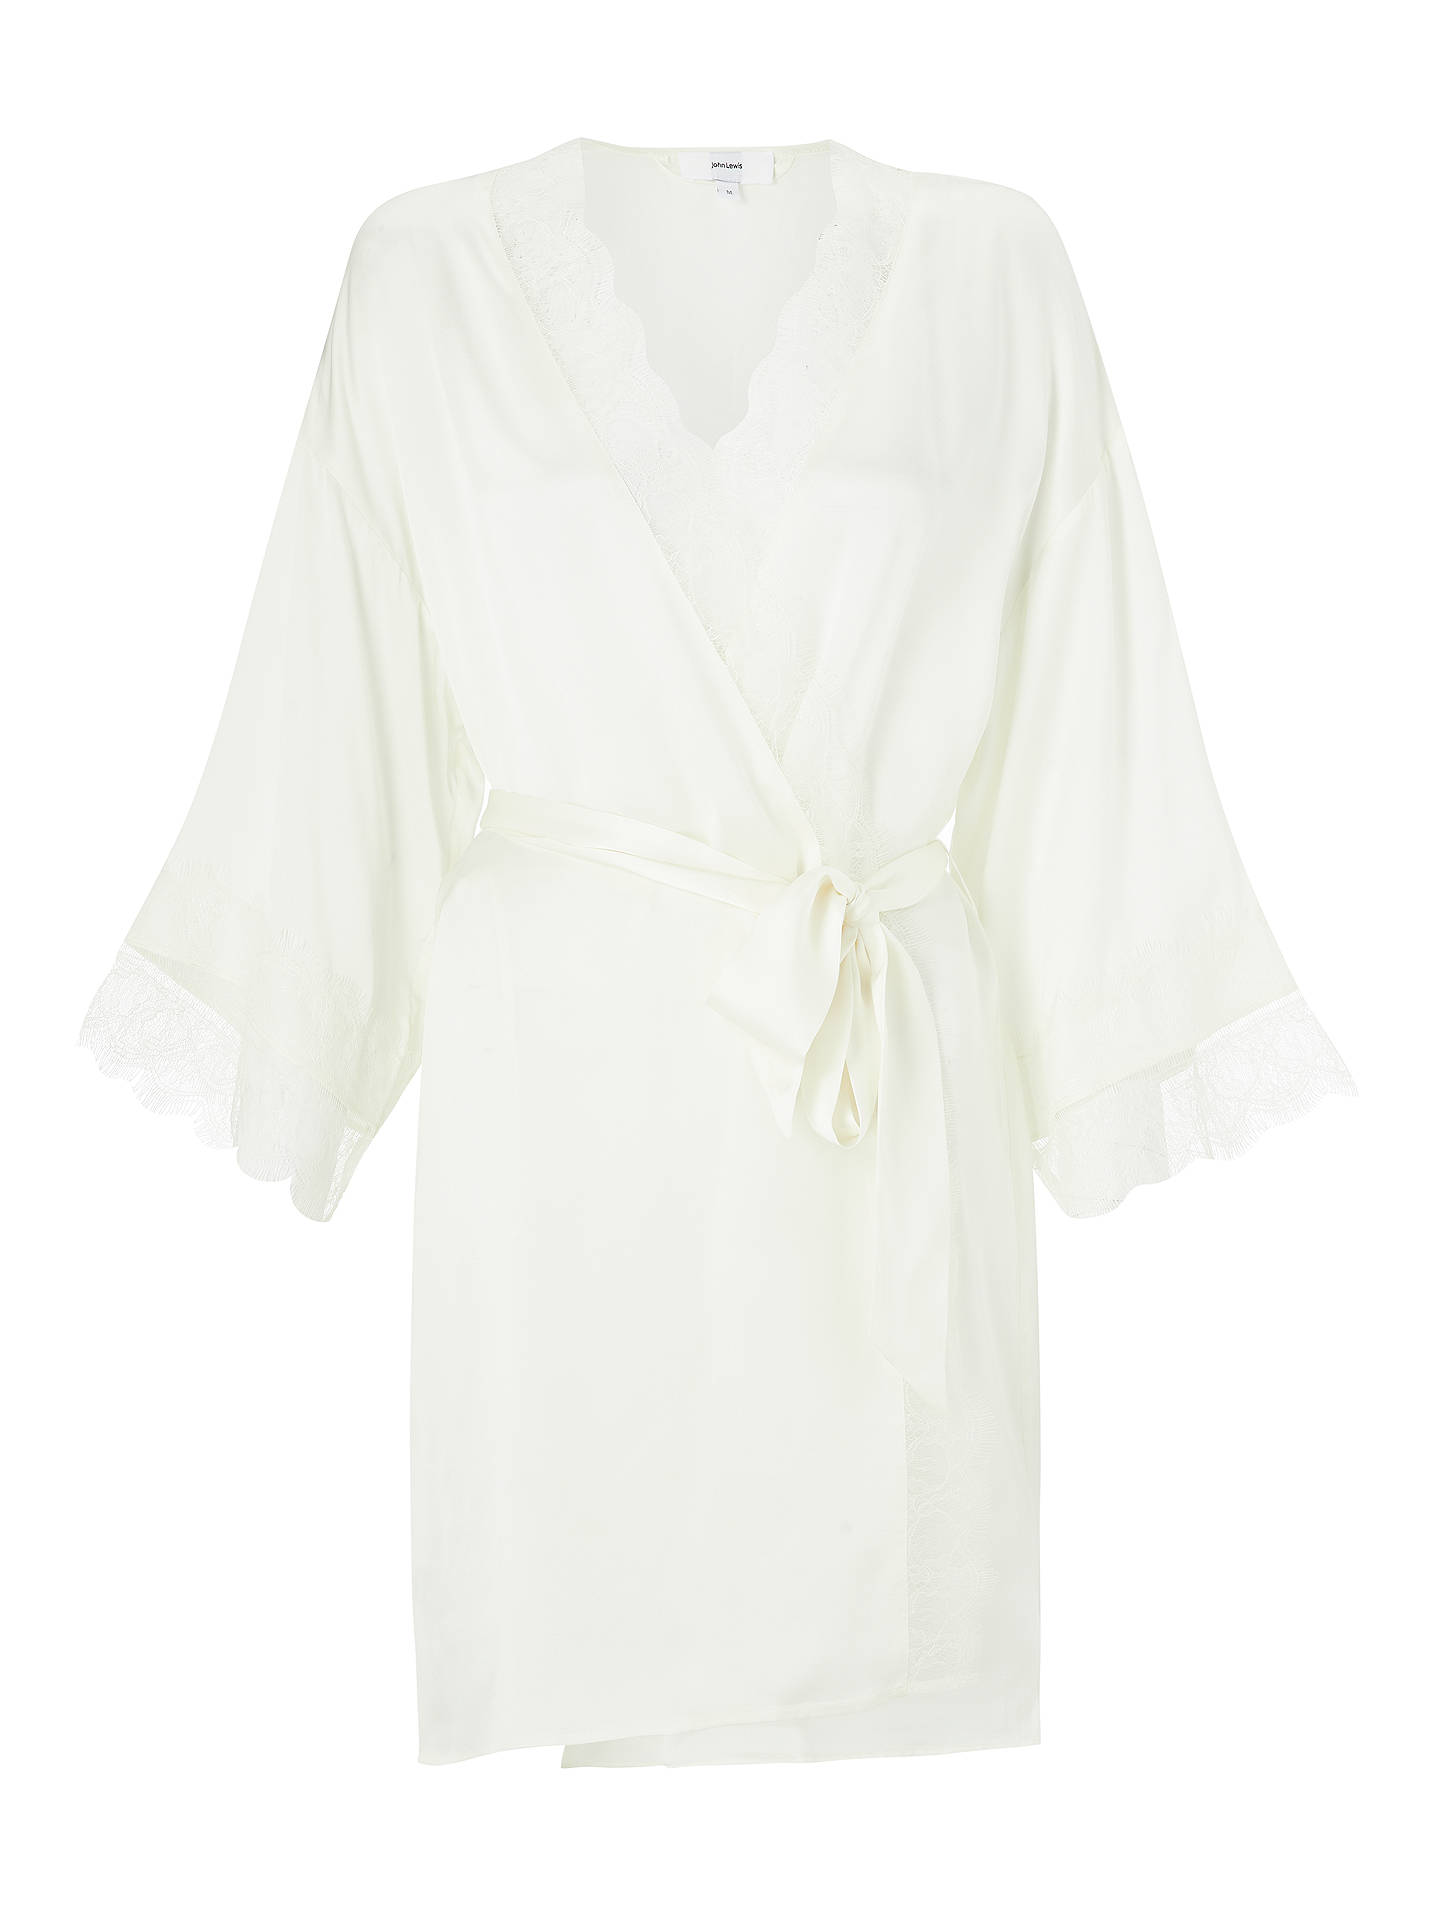 ba03de717f7 ... Buy John Lewis   Partners Silk Lace Trim Dressing Gown